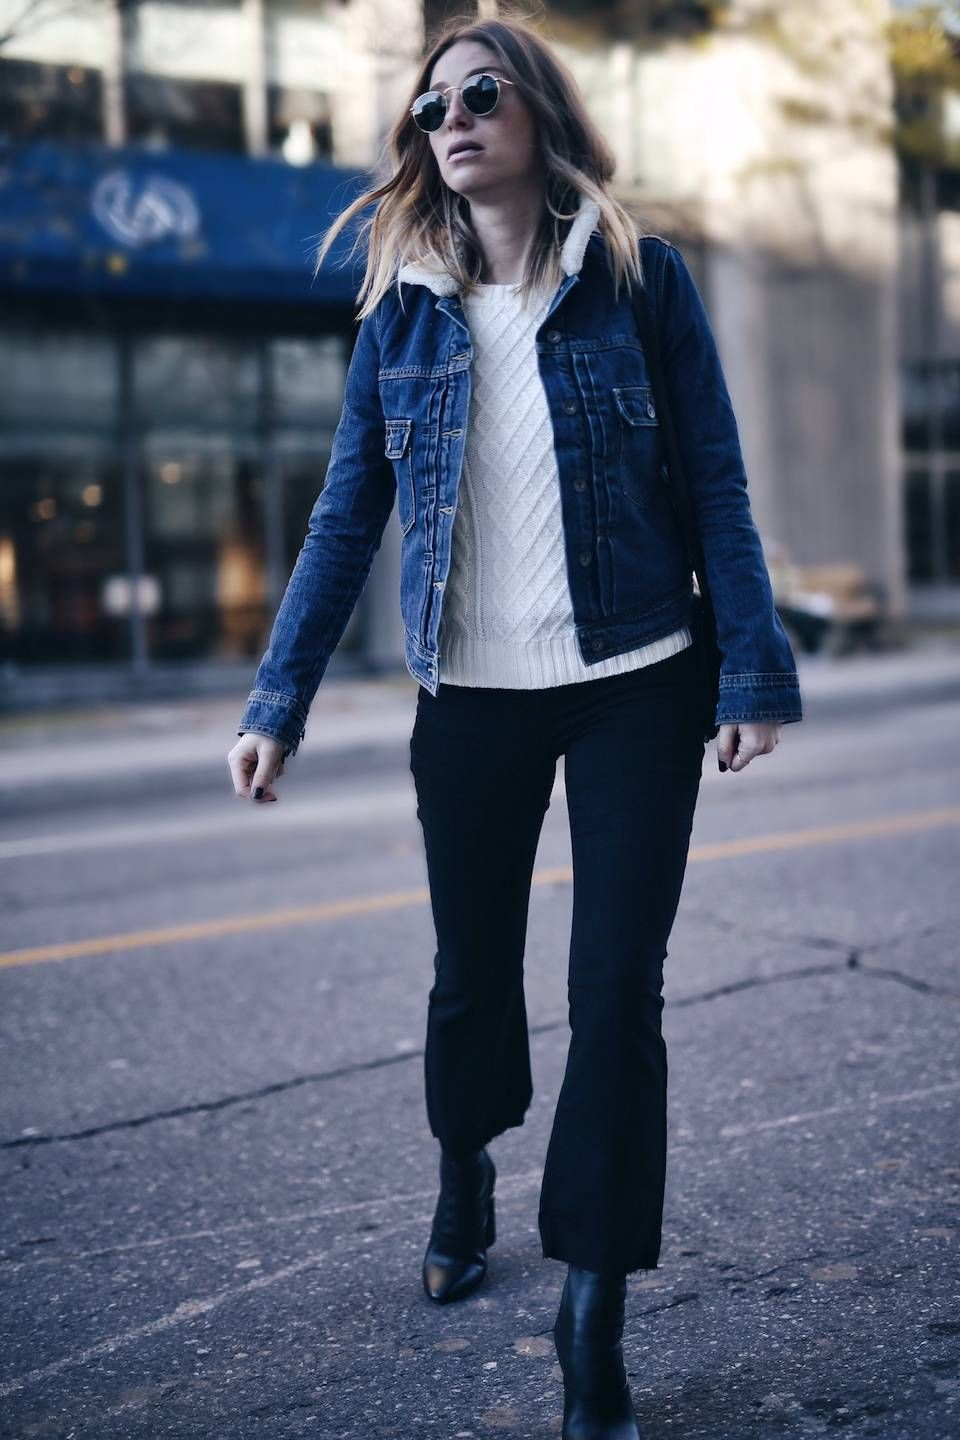 how to wear a shearling denim jacket, casual cool street style, editor tips tricks, women's fashion, online shopping, old navy collaboration, celine bag